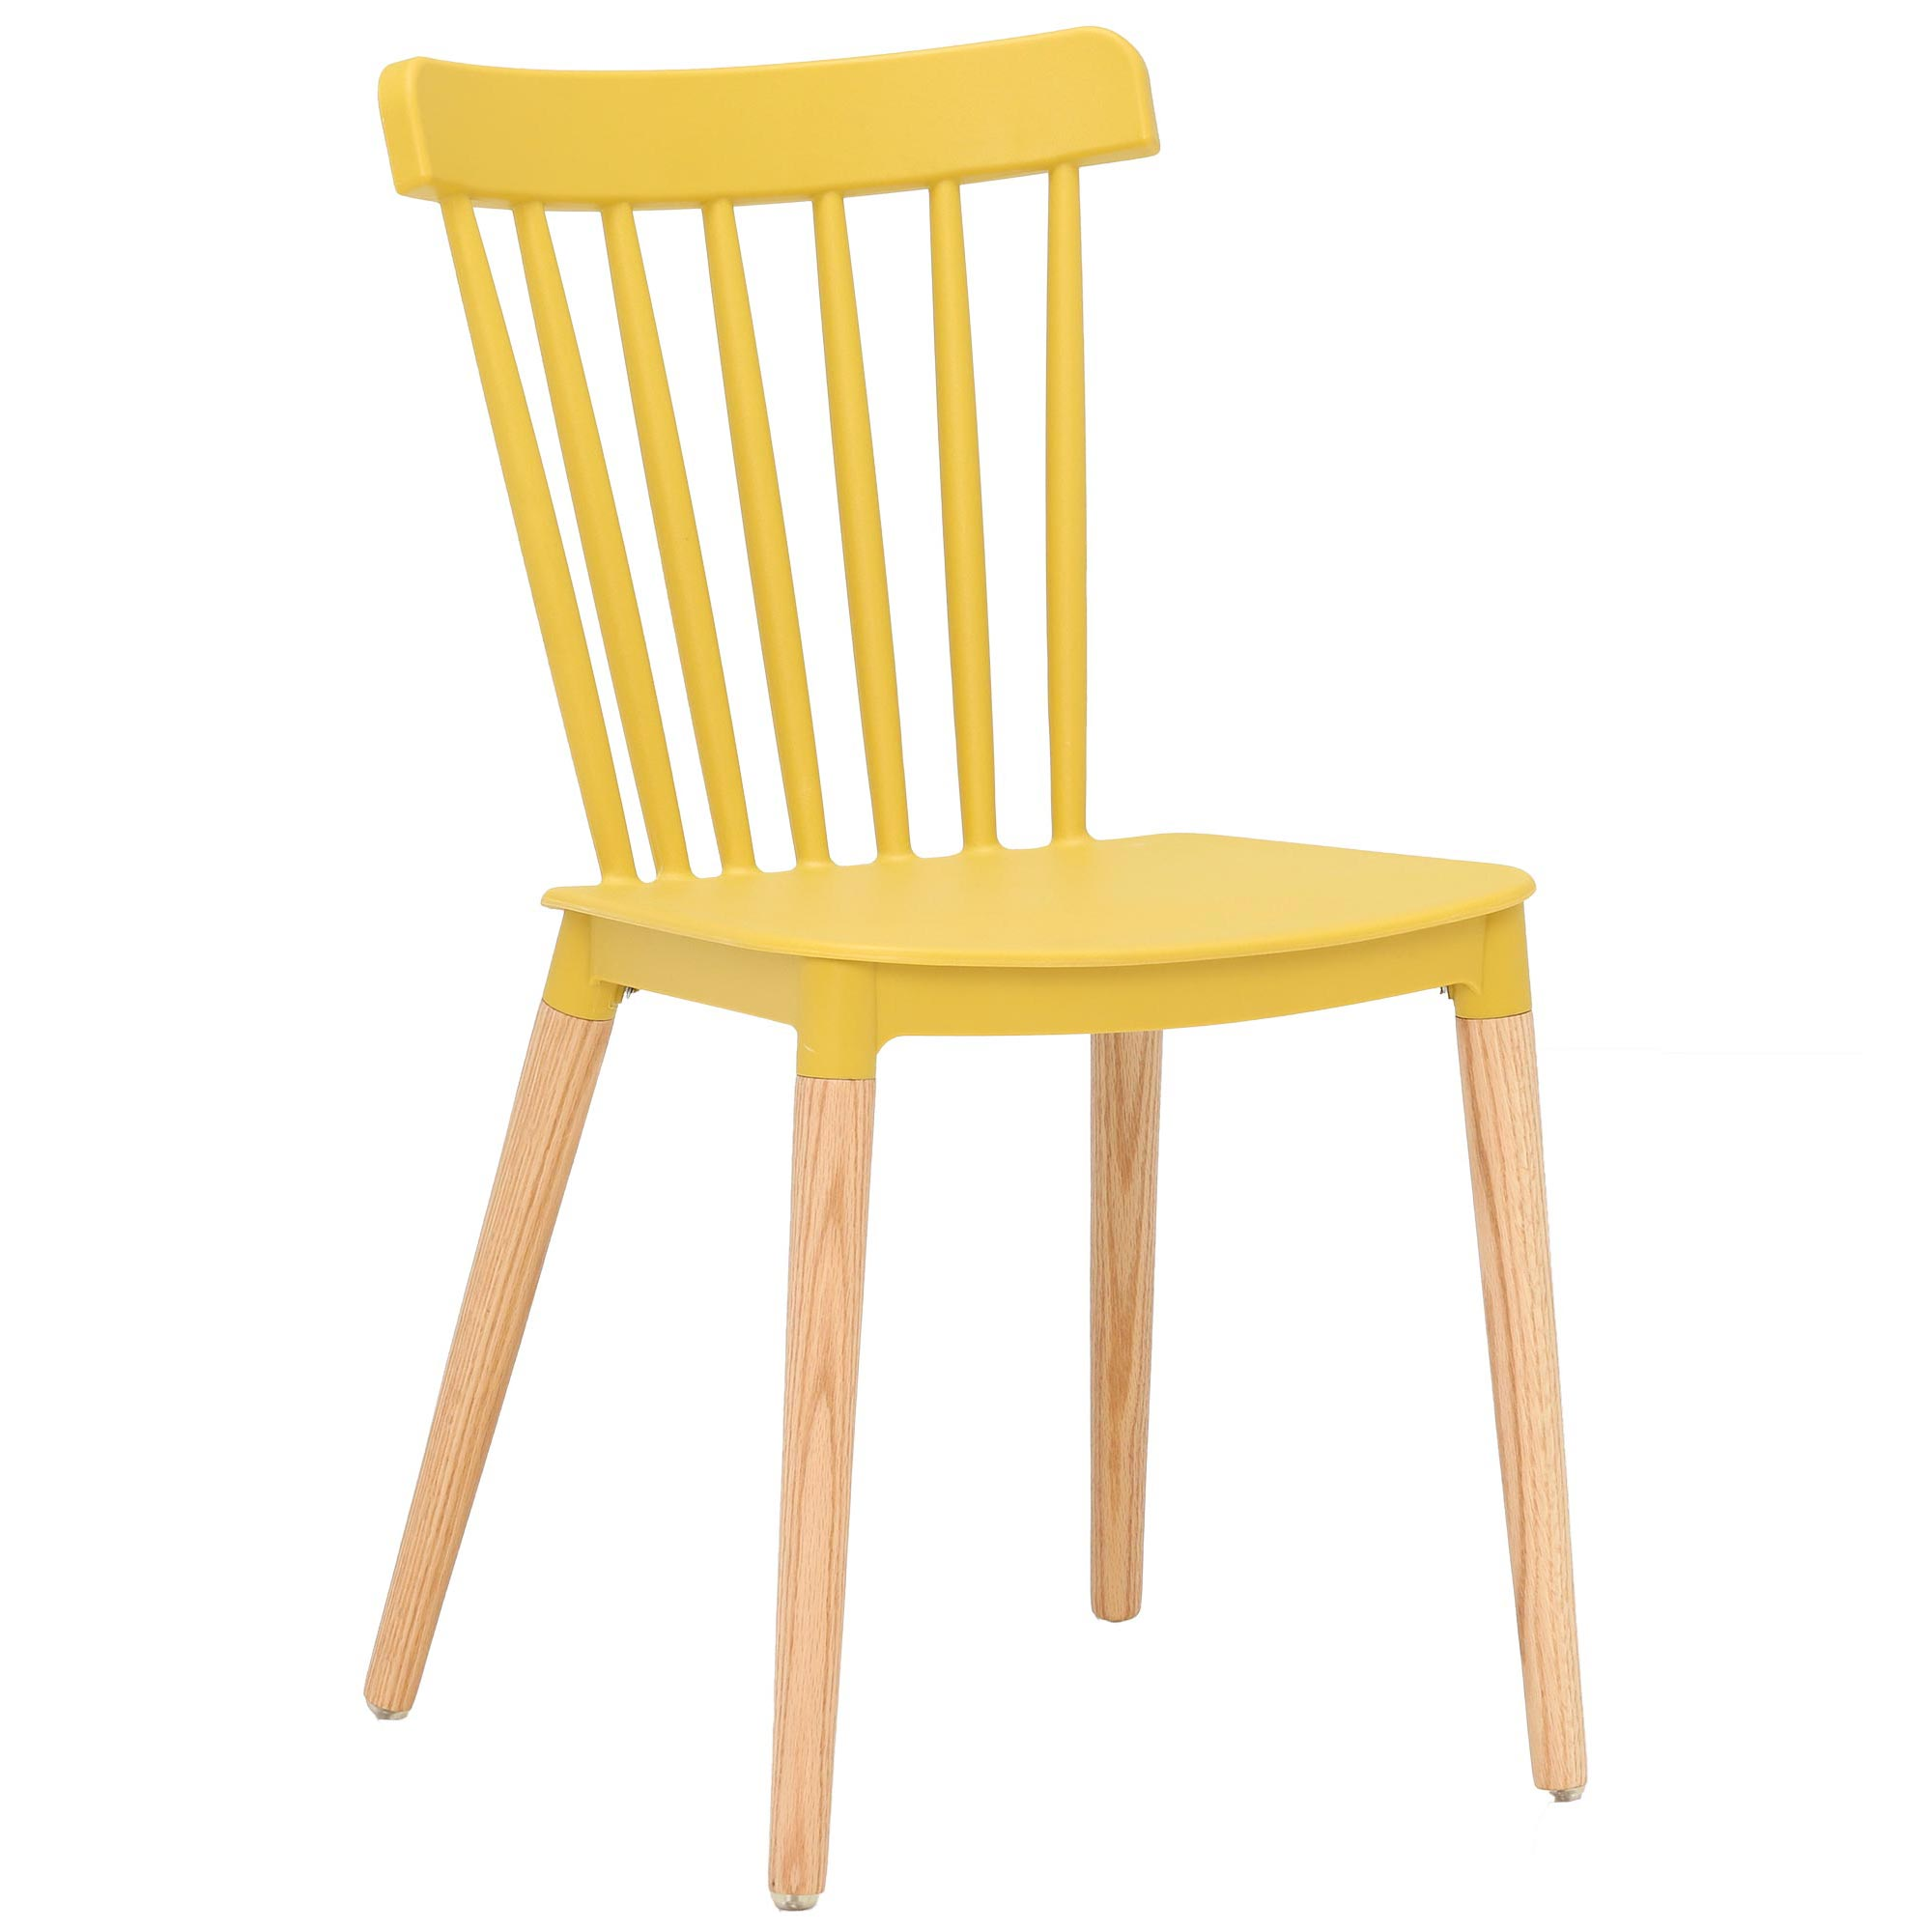 scandinavian design yellow pp plastic dining chair with solid wood legs